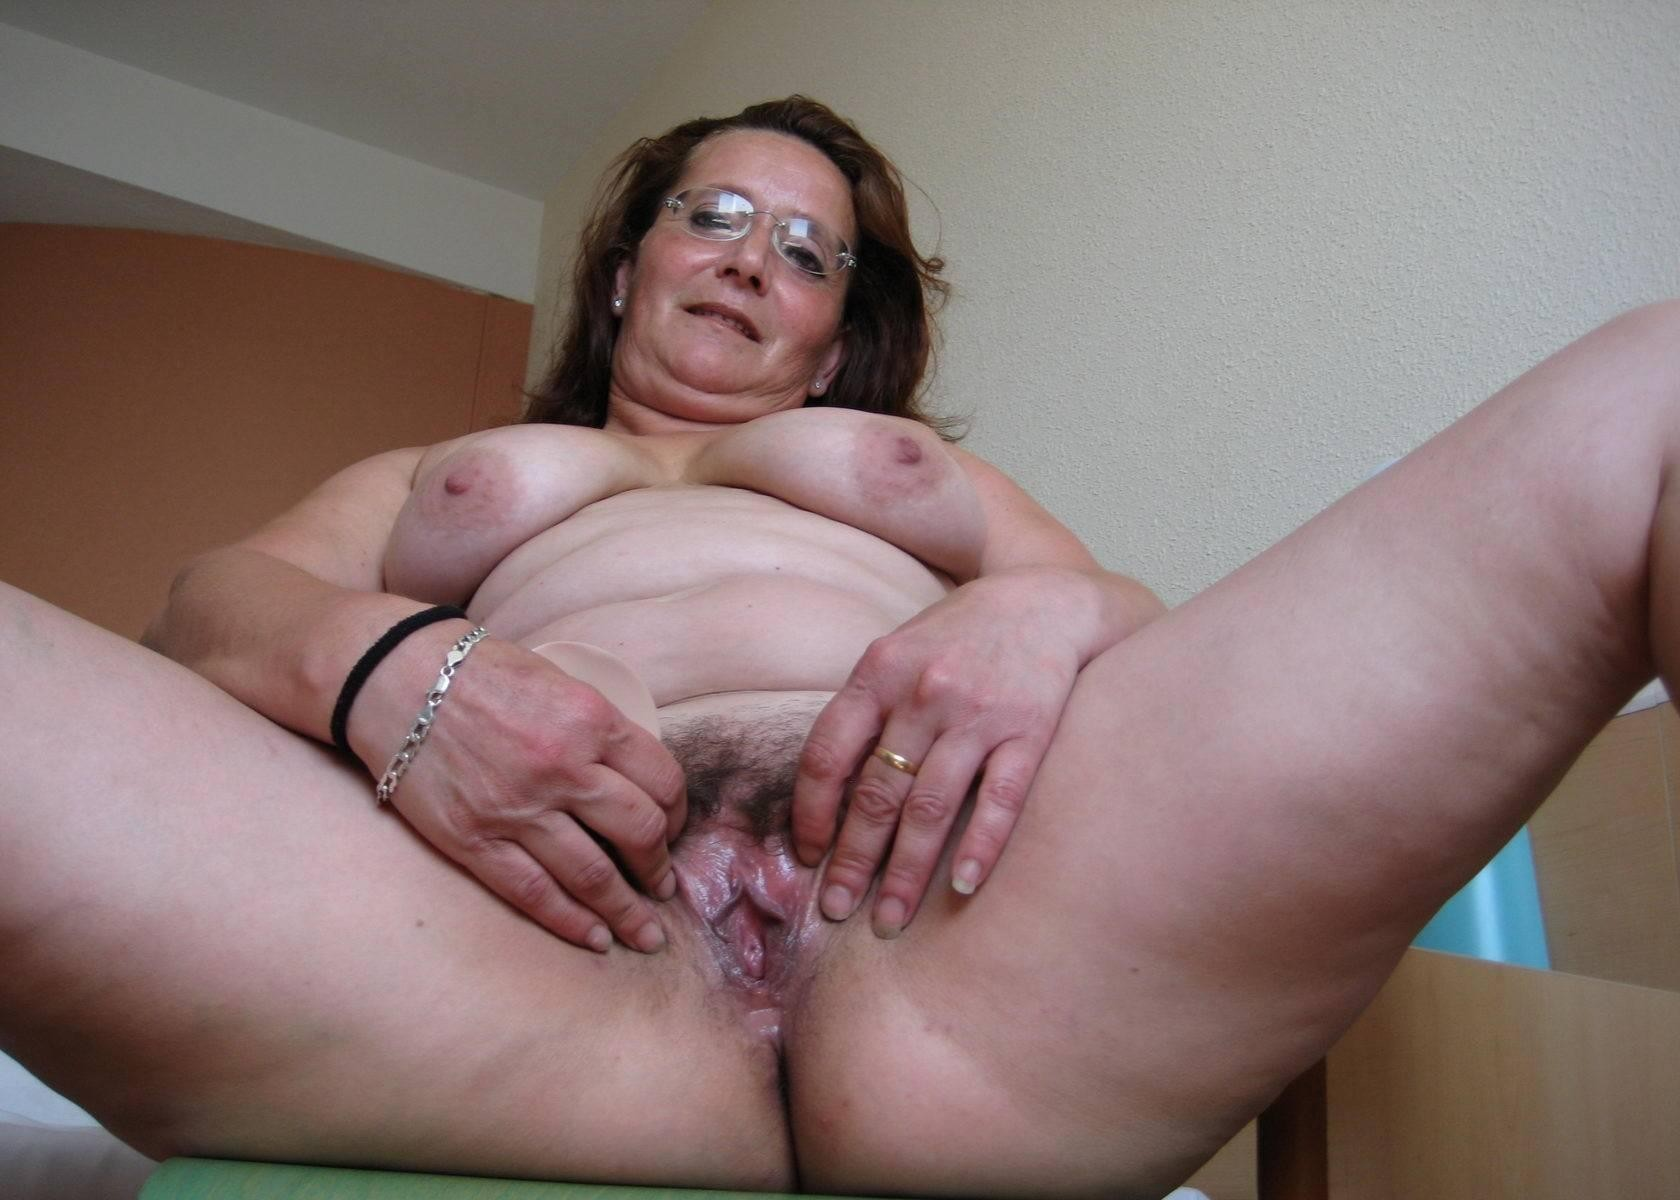 Old granny pussy panties